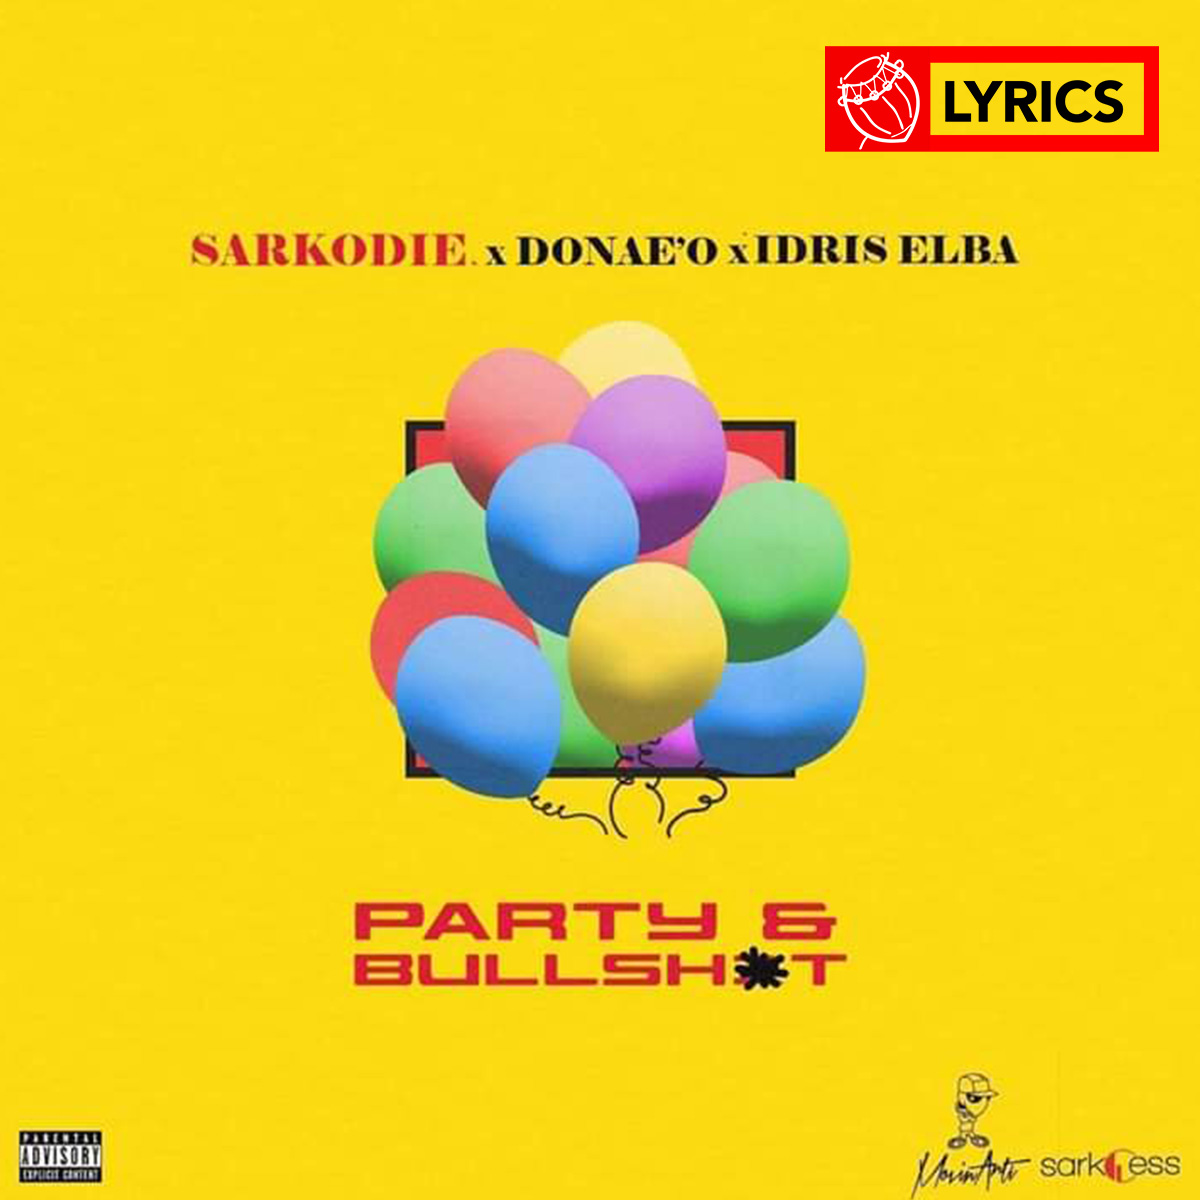 Lyrics: Party & Bullsh#t by Sarkodie feat. Donae'O & Idris Elba